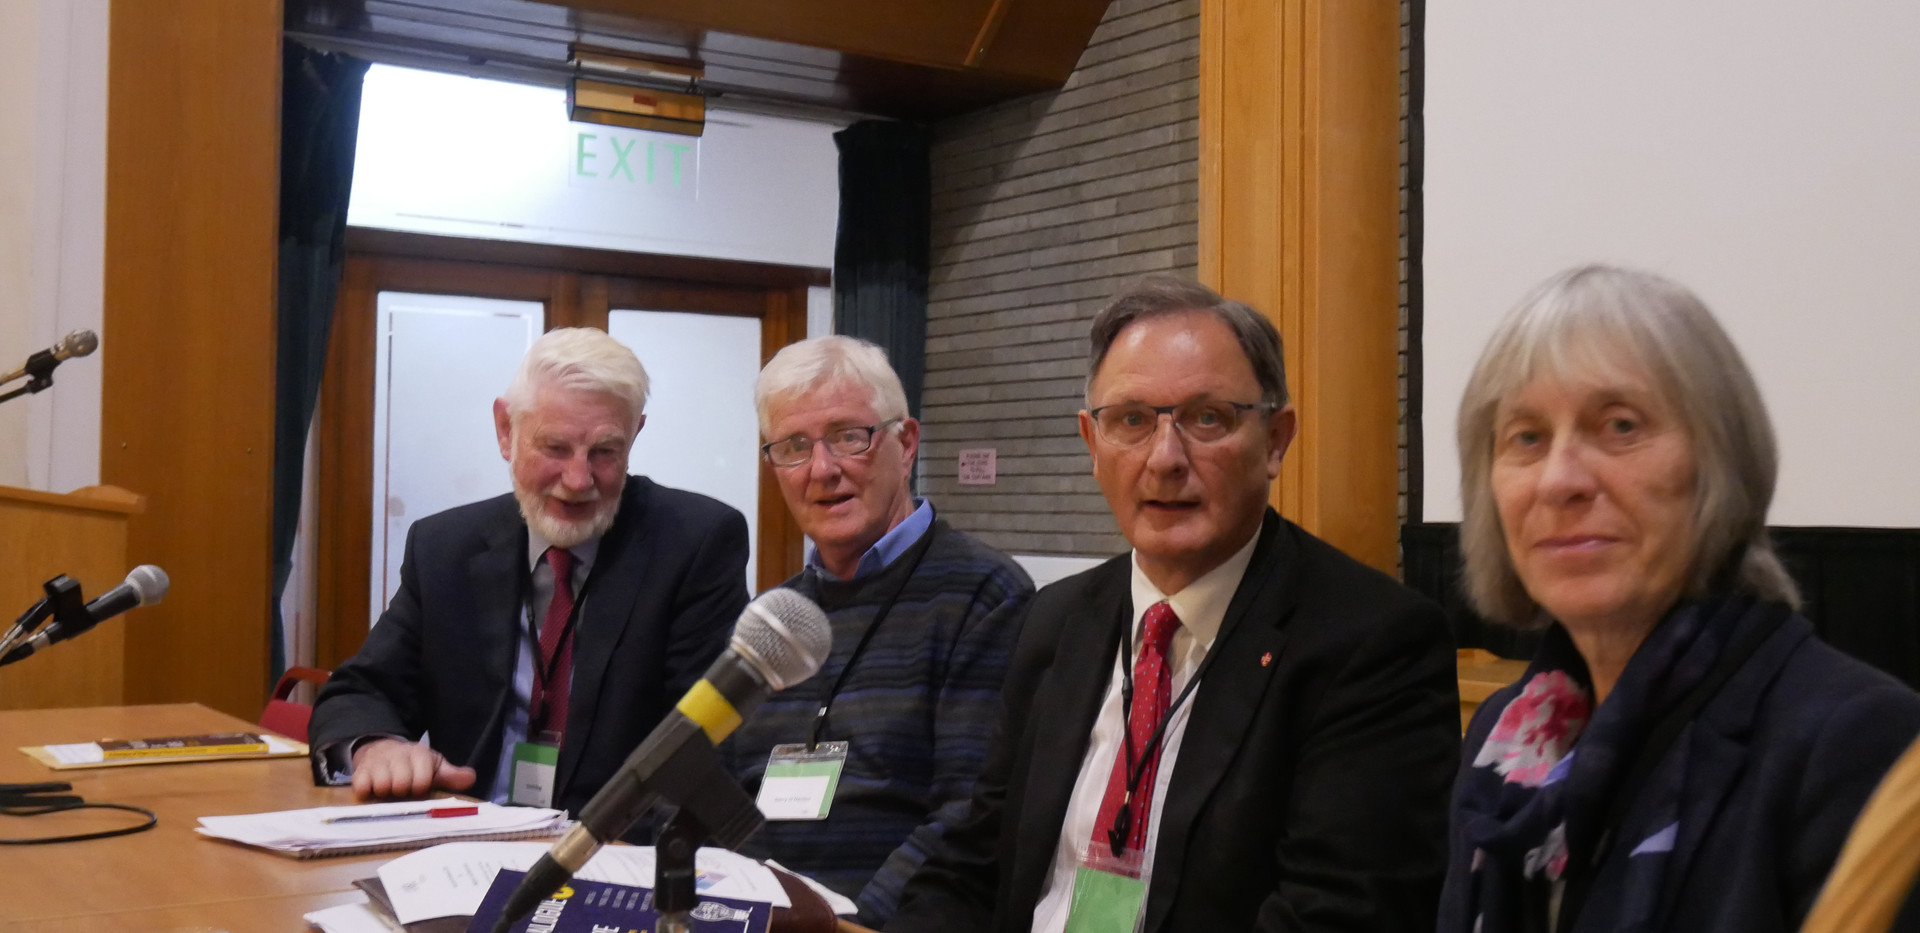 L-R: David Begg, Gerry O'Hanlon SJ, Fergus O'Ferrall & Iseult Honohan, four of the authors of A Dialogue of Hope: Critical Thinking for Critical Times